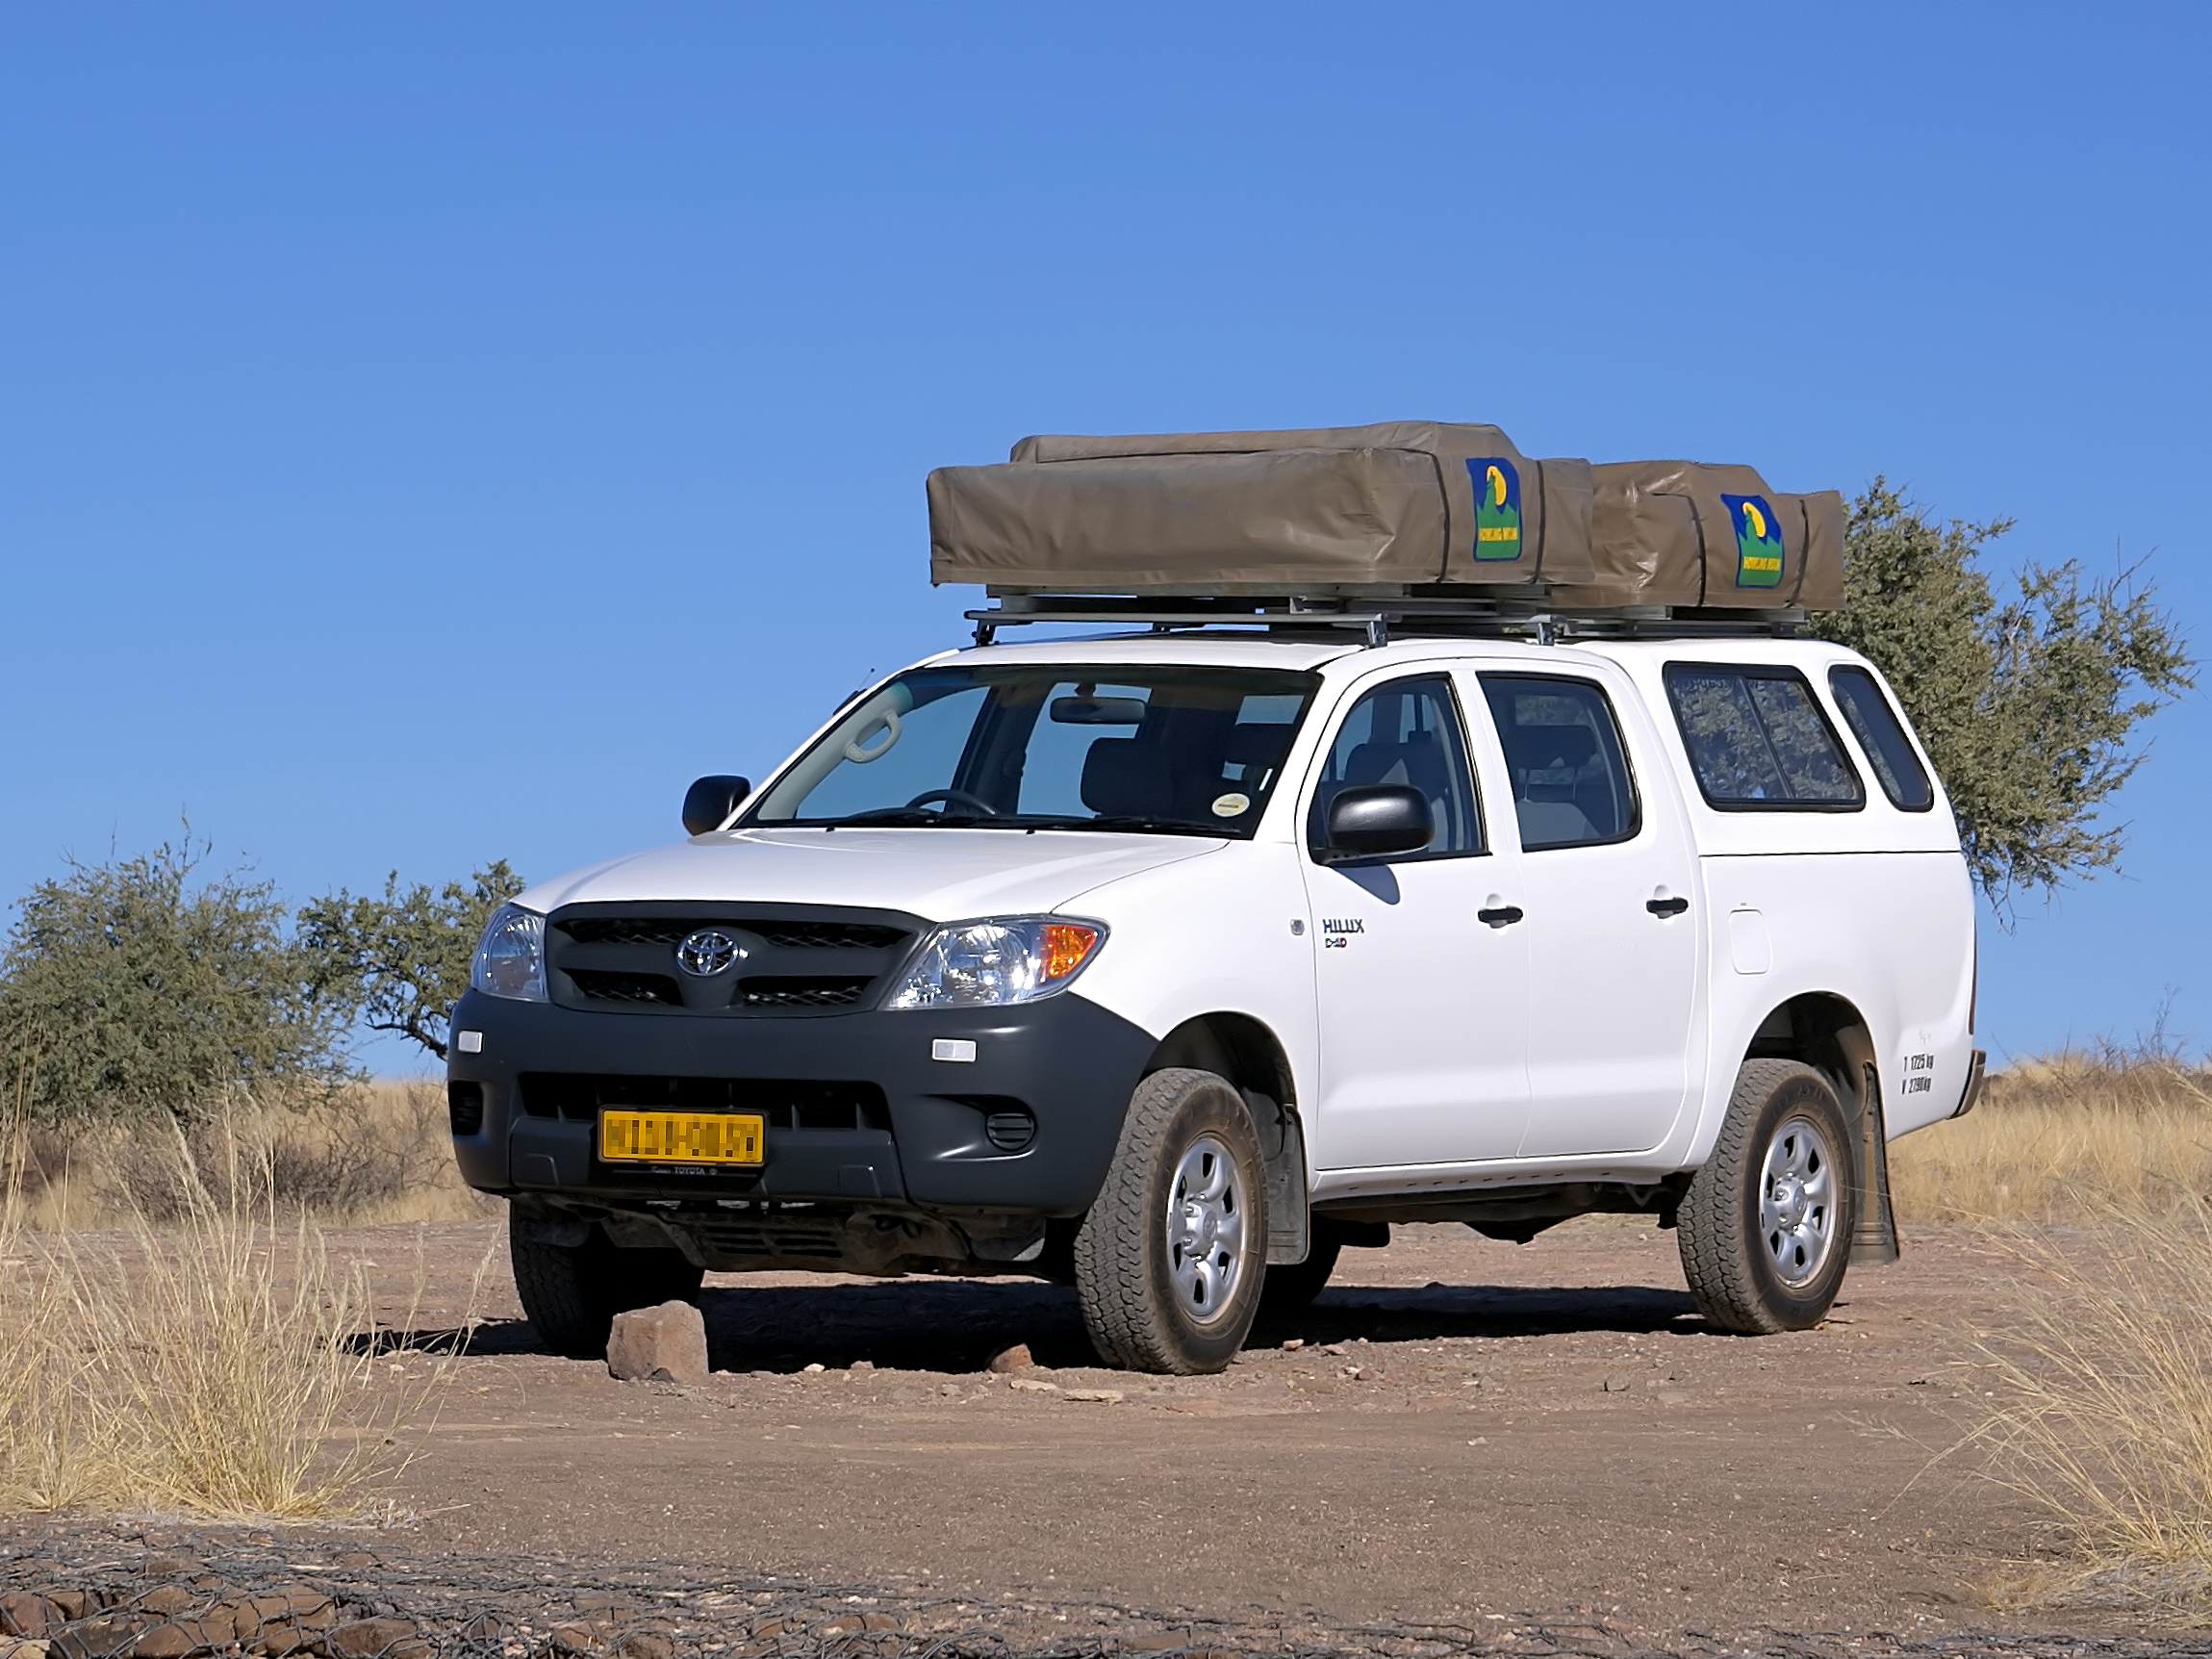 File:Toyota hilux with roof tents.jpg - Wikimedia Commons